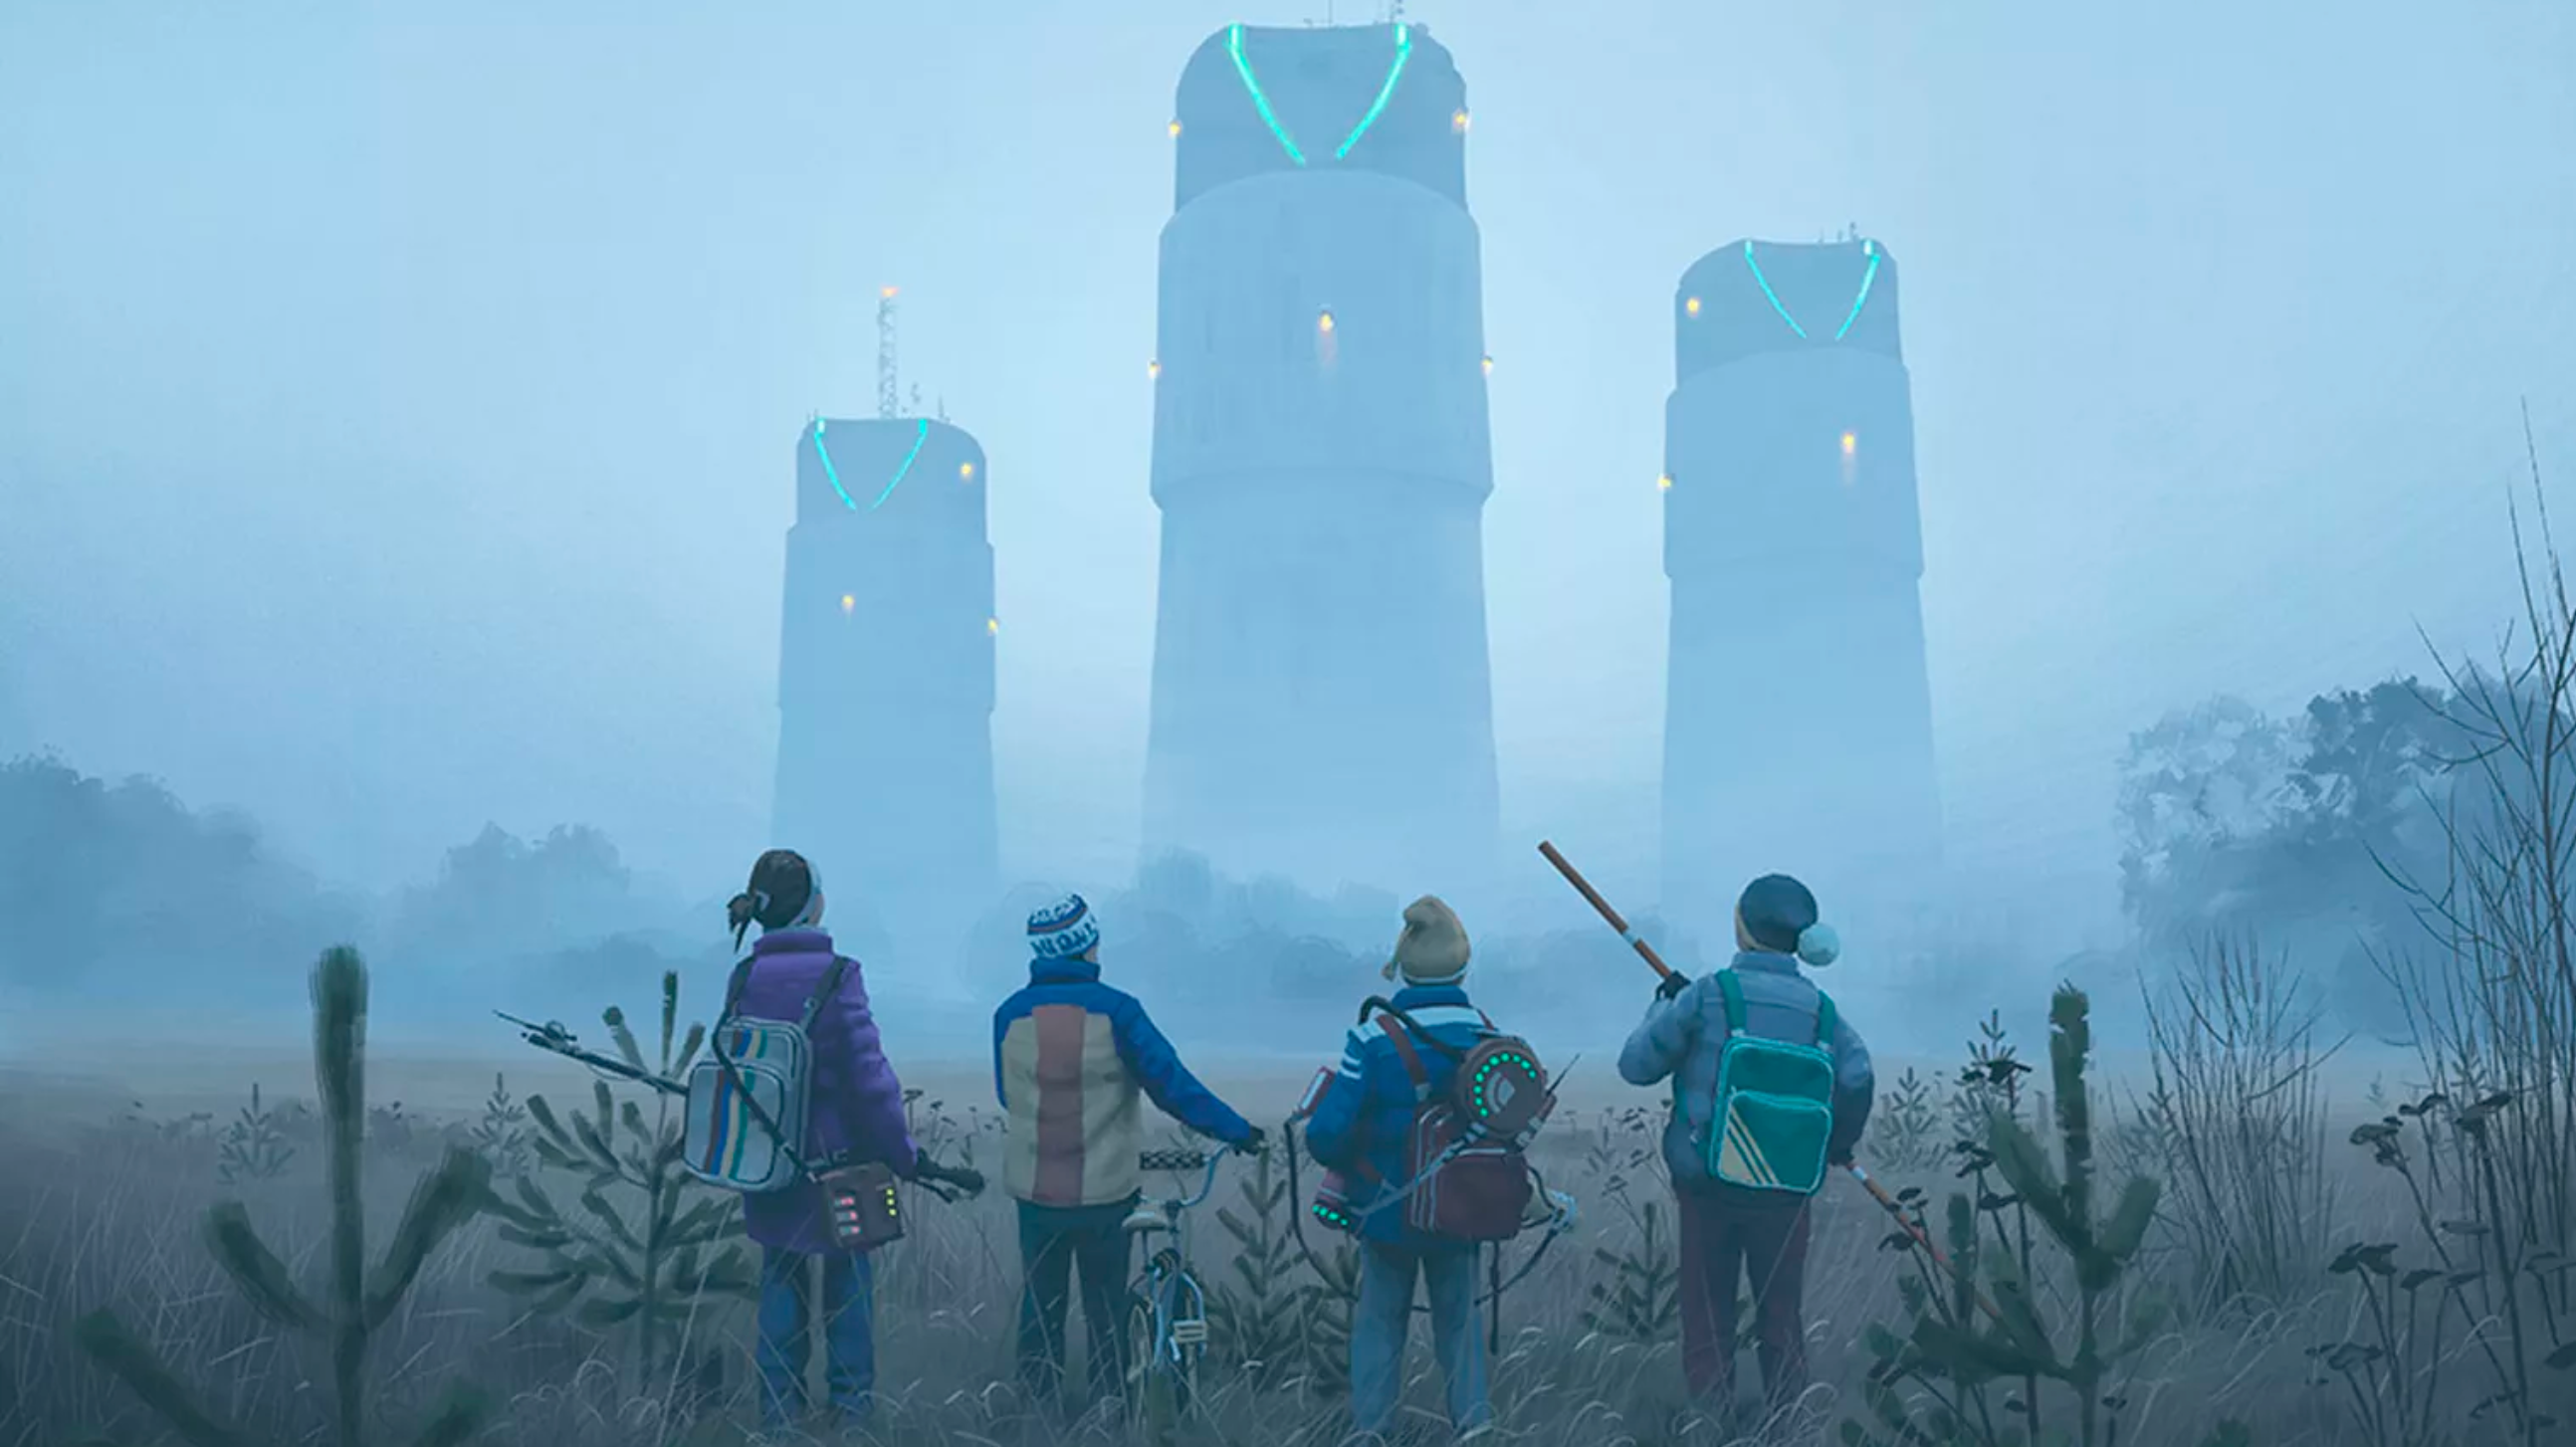 Tales From the Loop - four kids with three towers in the background